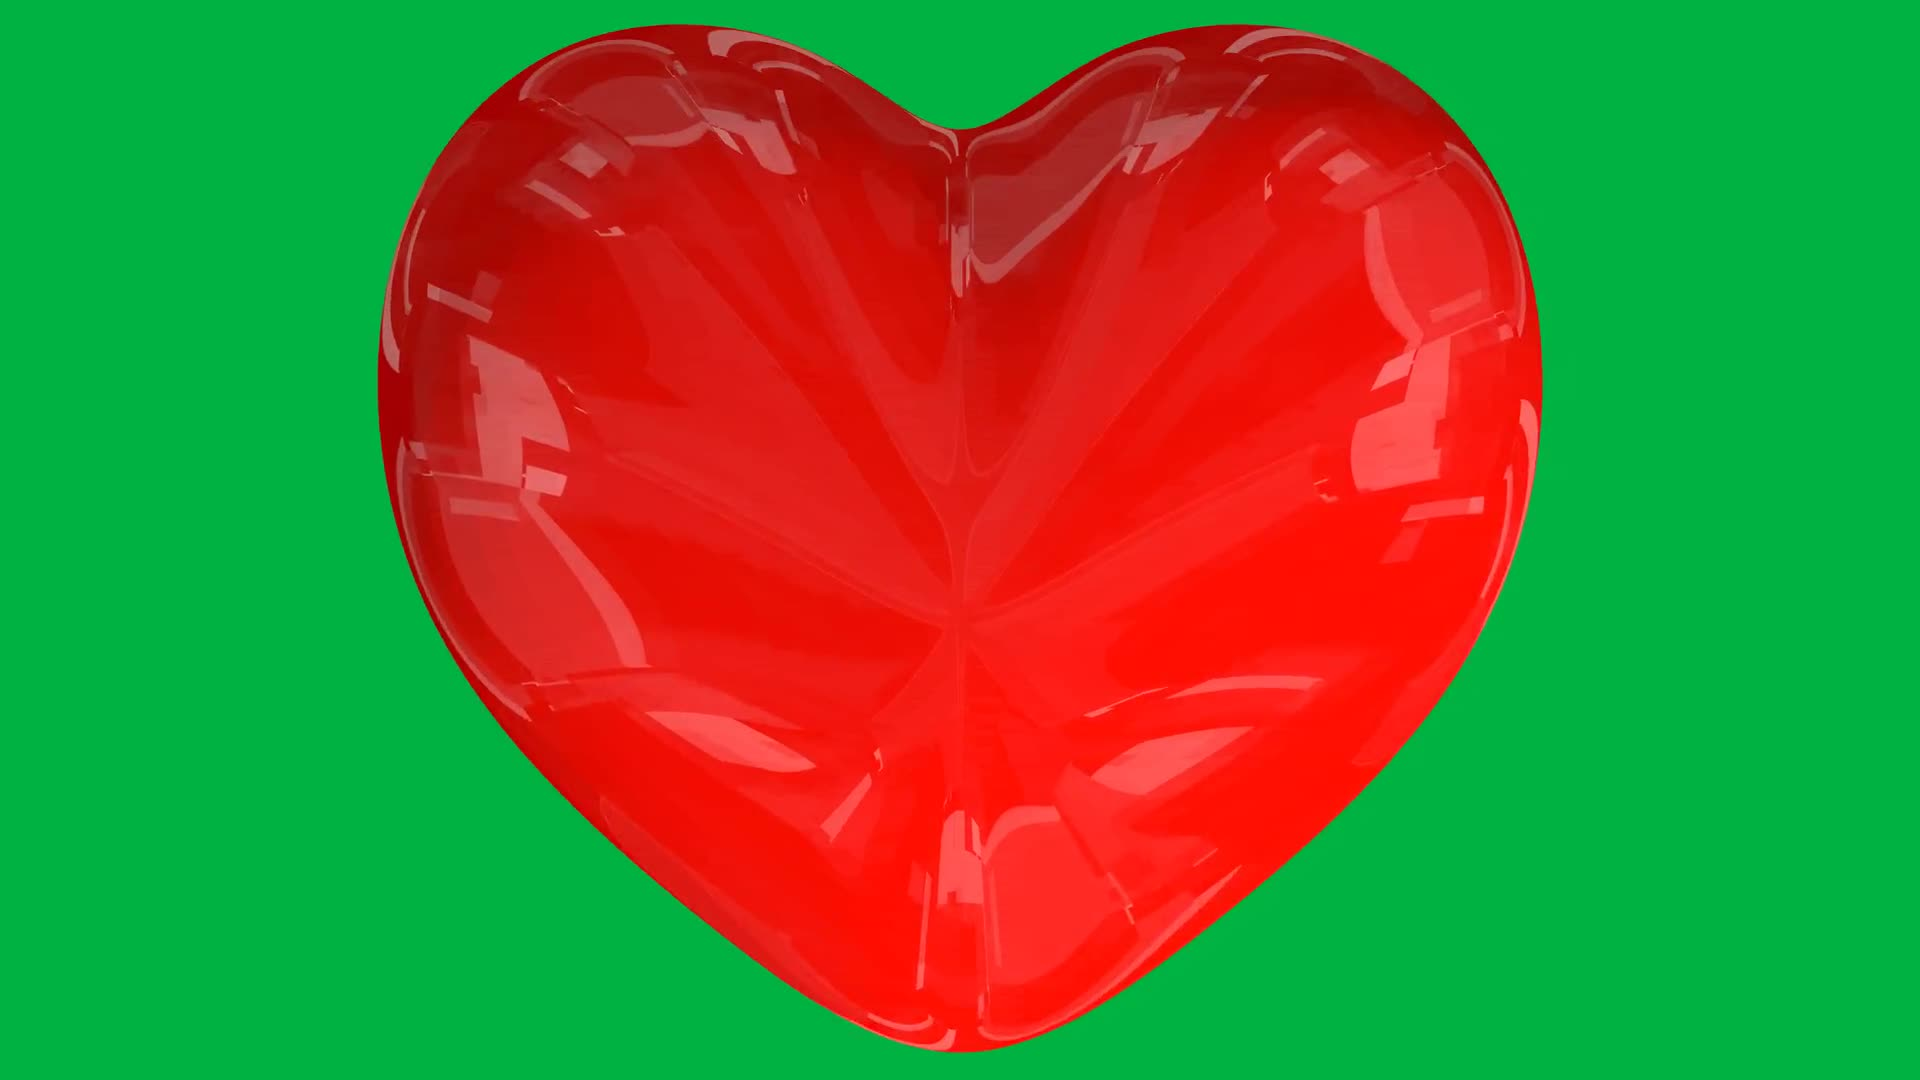 Heart red heartbeat rhythm green